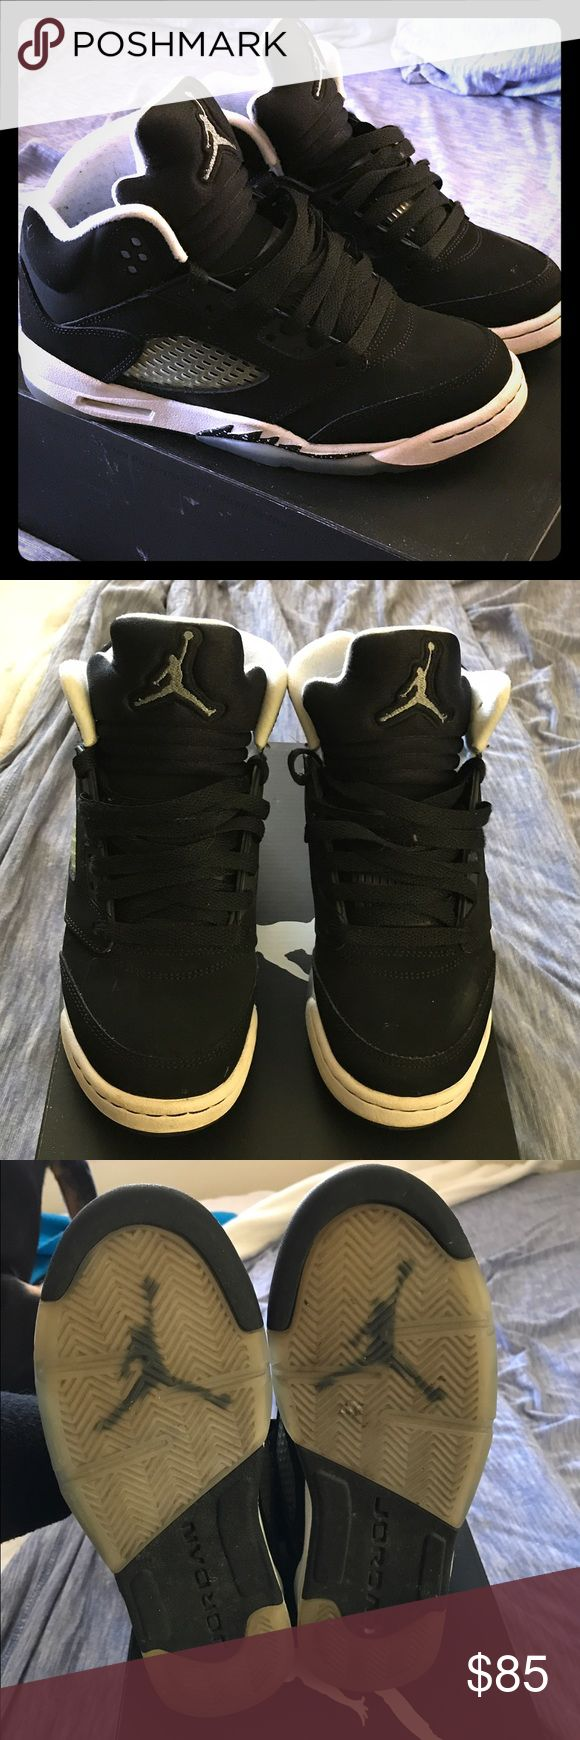 Retro Jordan Oreos👟 Jordan 5s youth 4.5. Worn with no damage or scuffs. Minor stains on front white no cleaning couldn't get rid of🤗❤️*SMOKE FREE HOME🚭🚭🚭* Jordan Shoes Sneakers